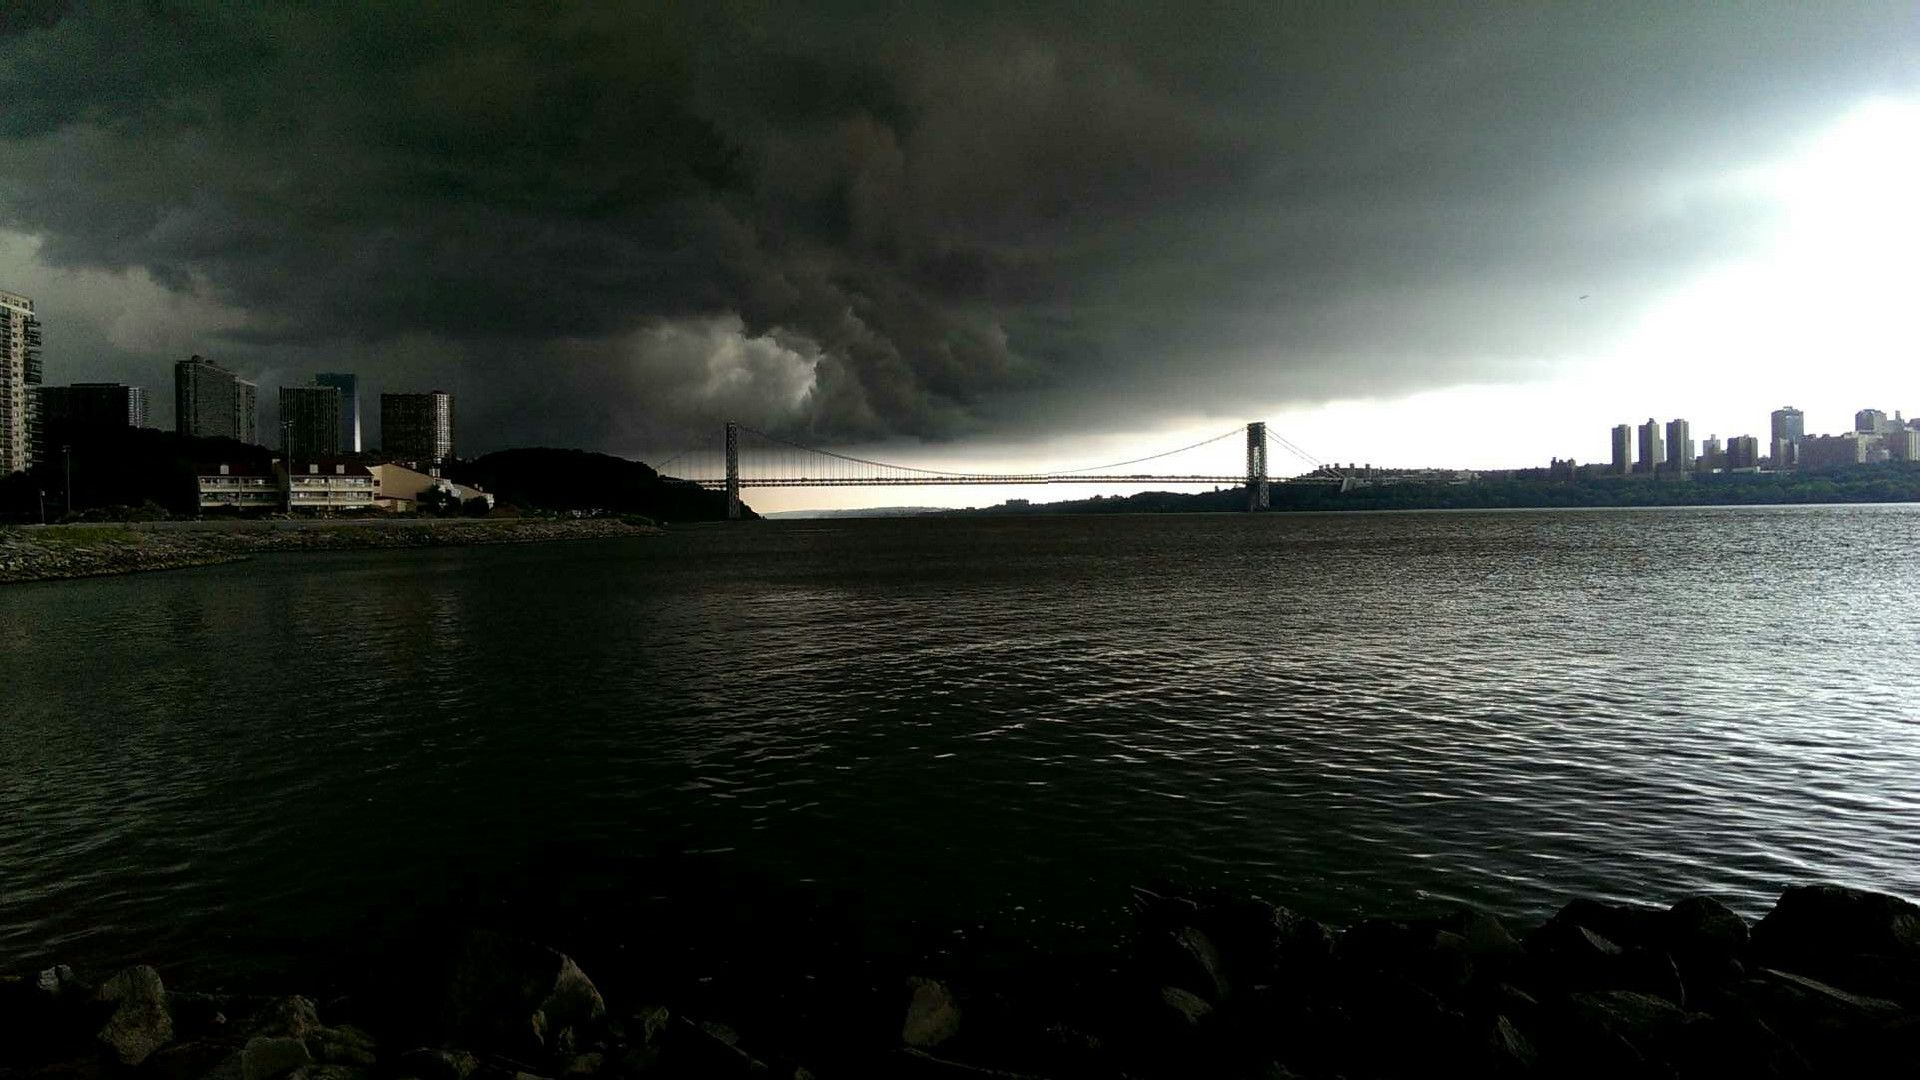 Storm over the GWB